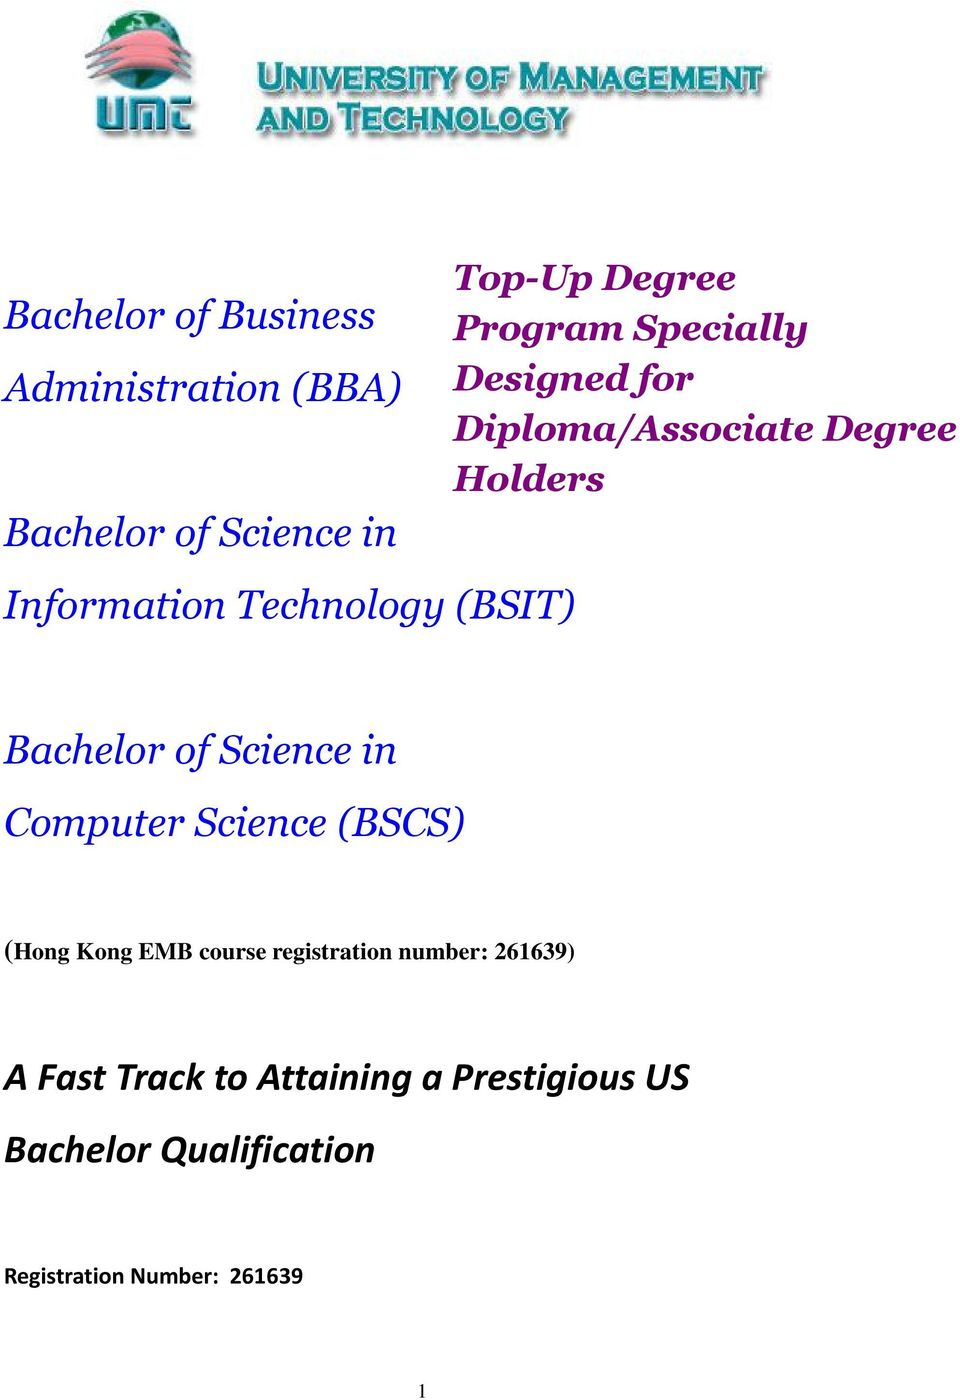 Bachelor of Science in Computer Science (BSCS) (Hong Kong EMB course registration number: